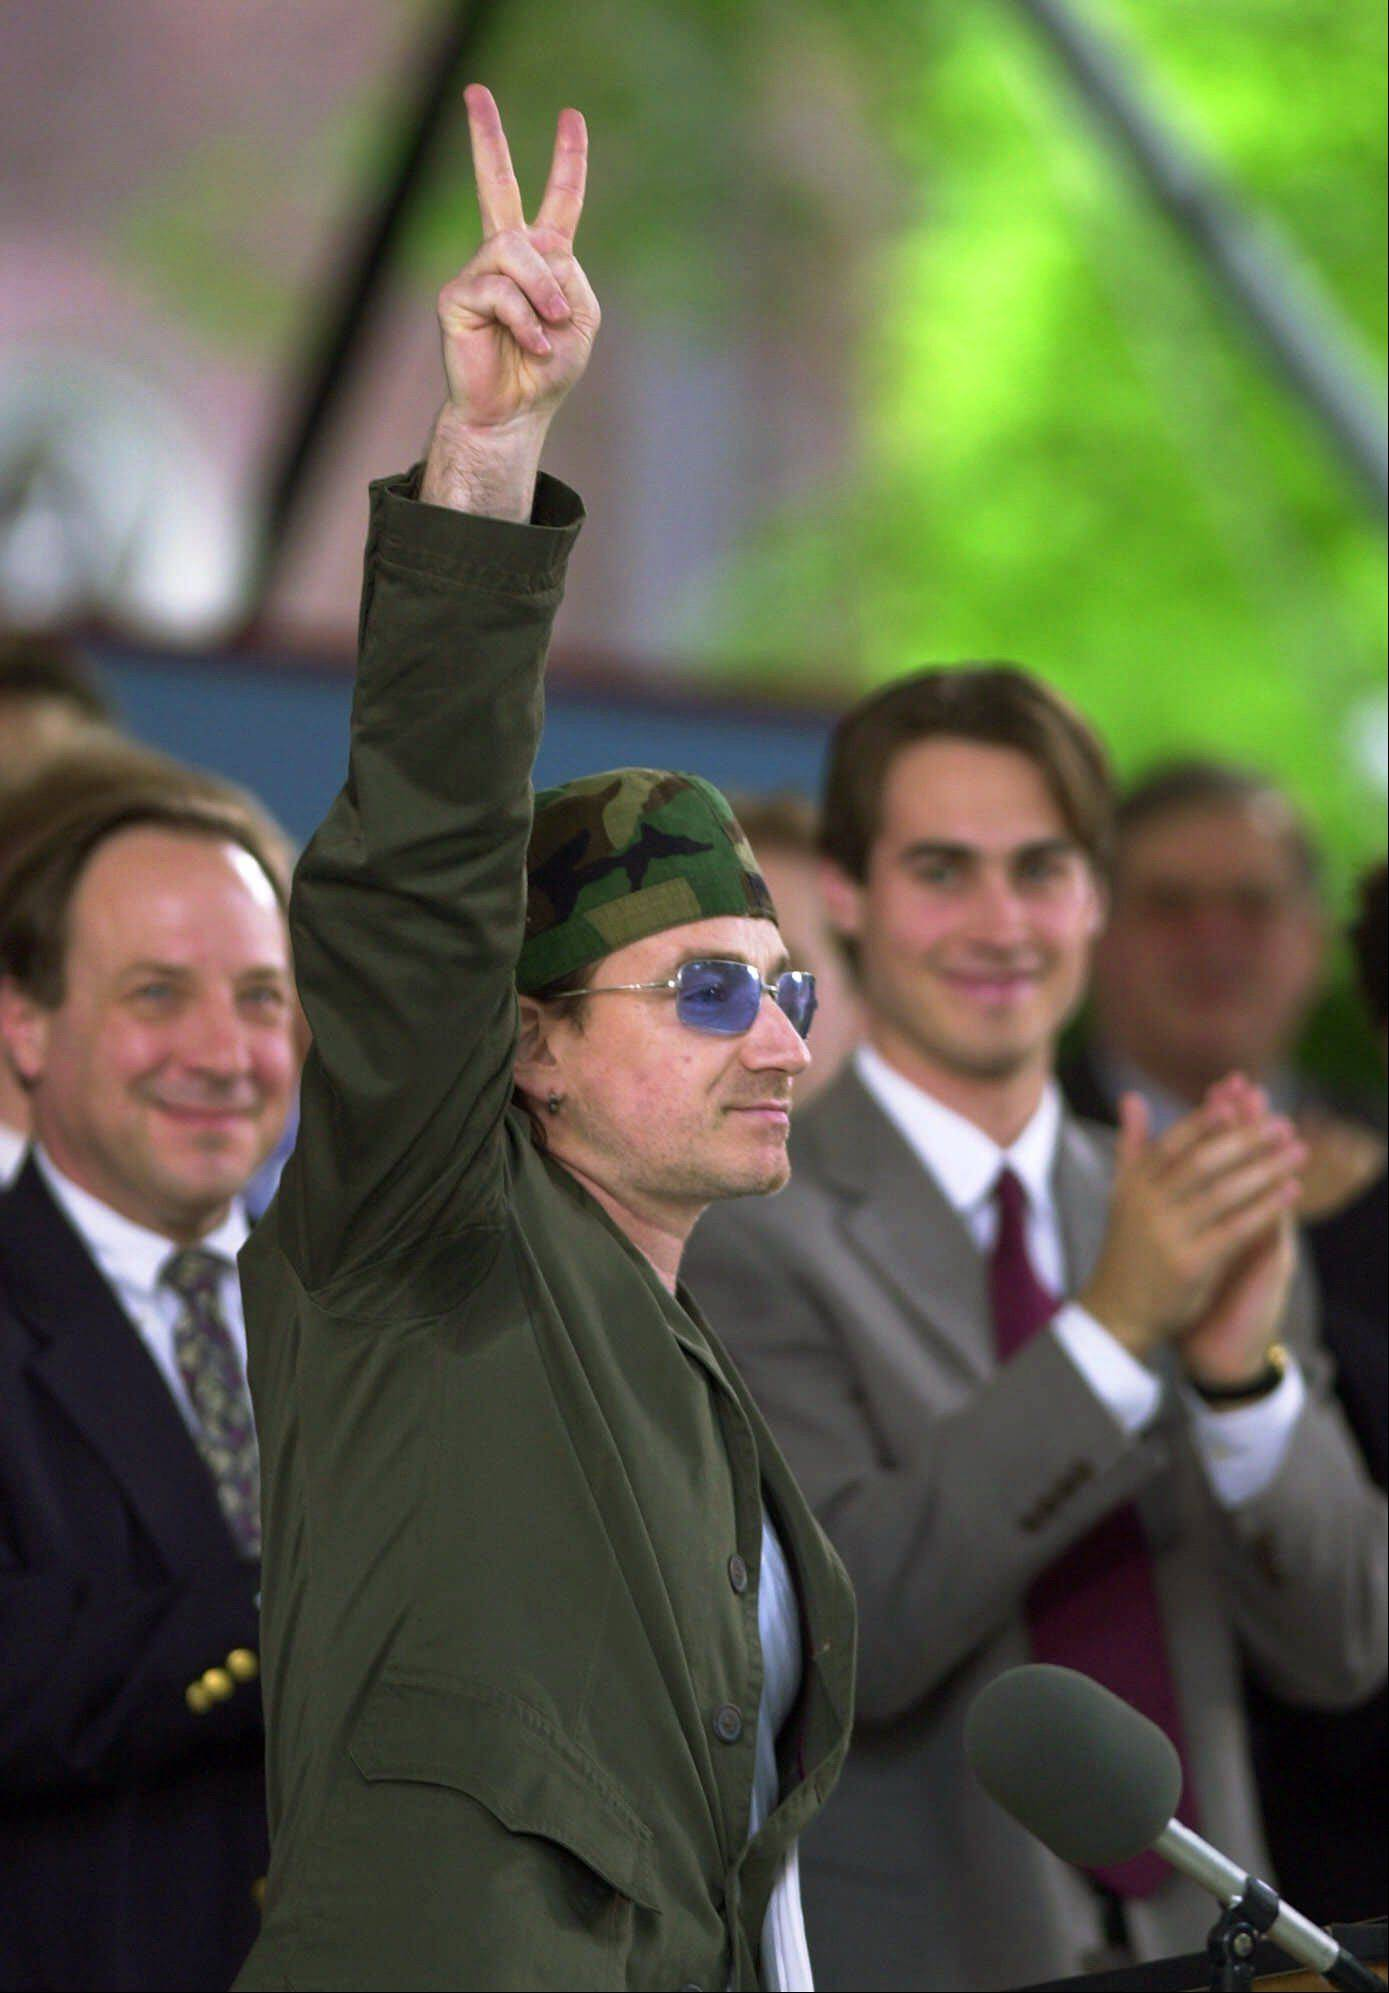 U-2's Bono gestures with the peace sign after delivering the Class Day address at commencement week ceremonies at Harvard University in Cambridge, Mass., Wednesday, June 6, 2001. At far left is Dean of Harvard College, Harry Lewis.